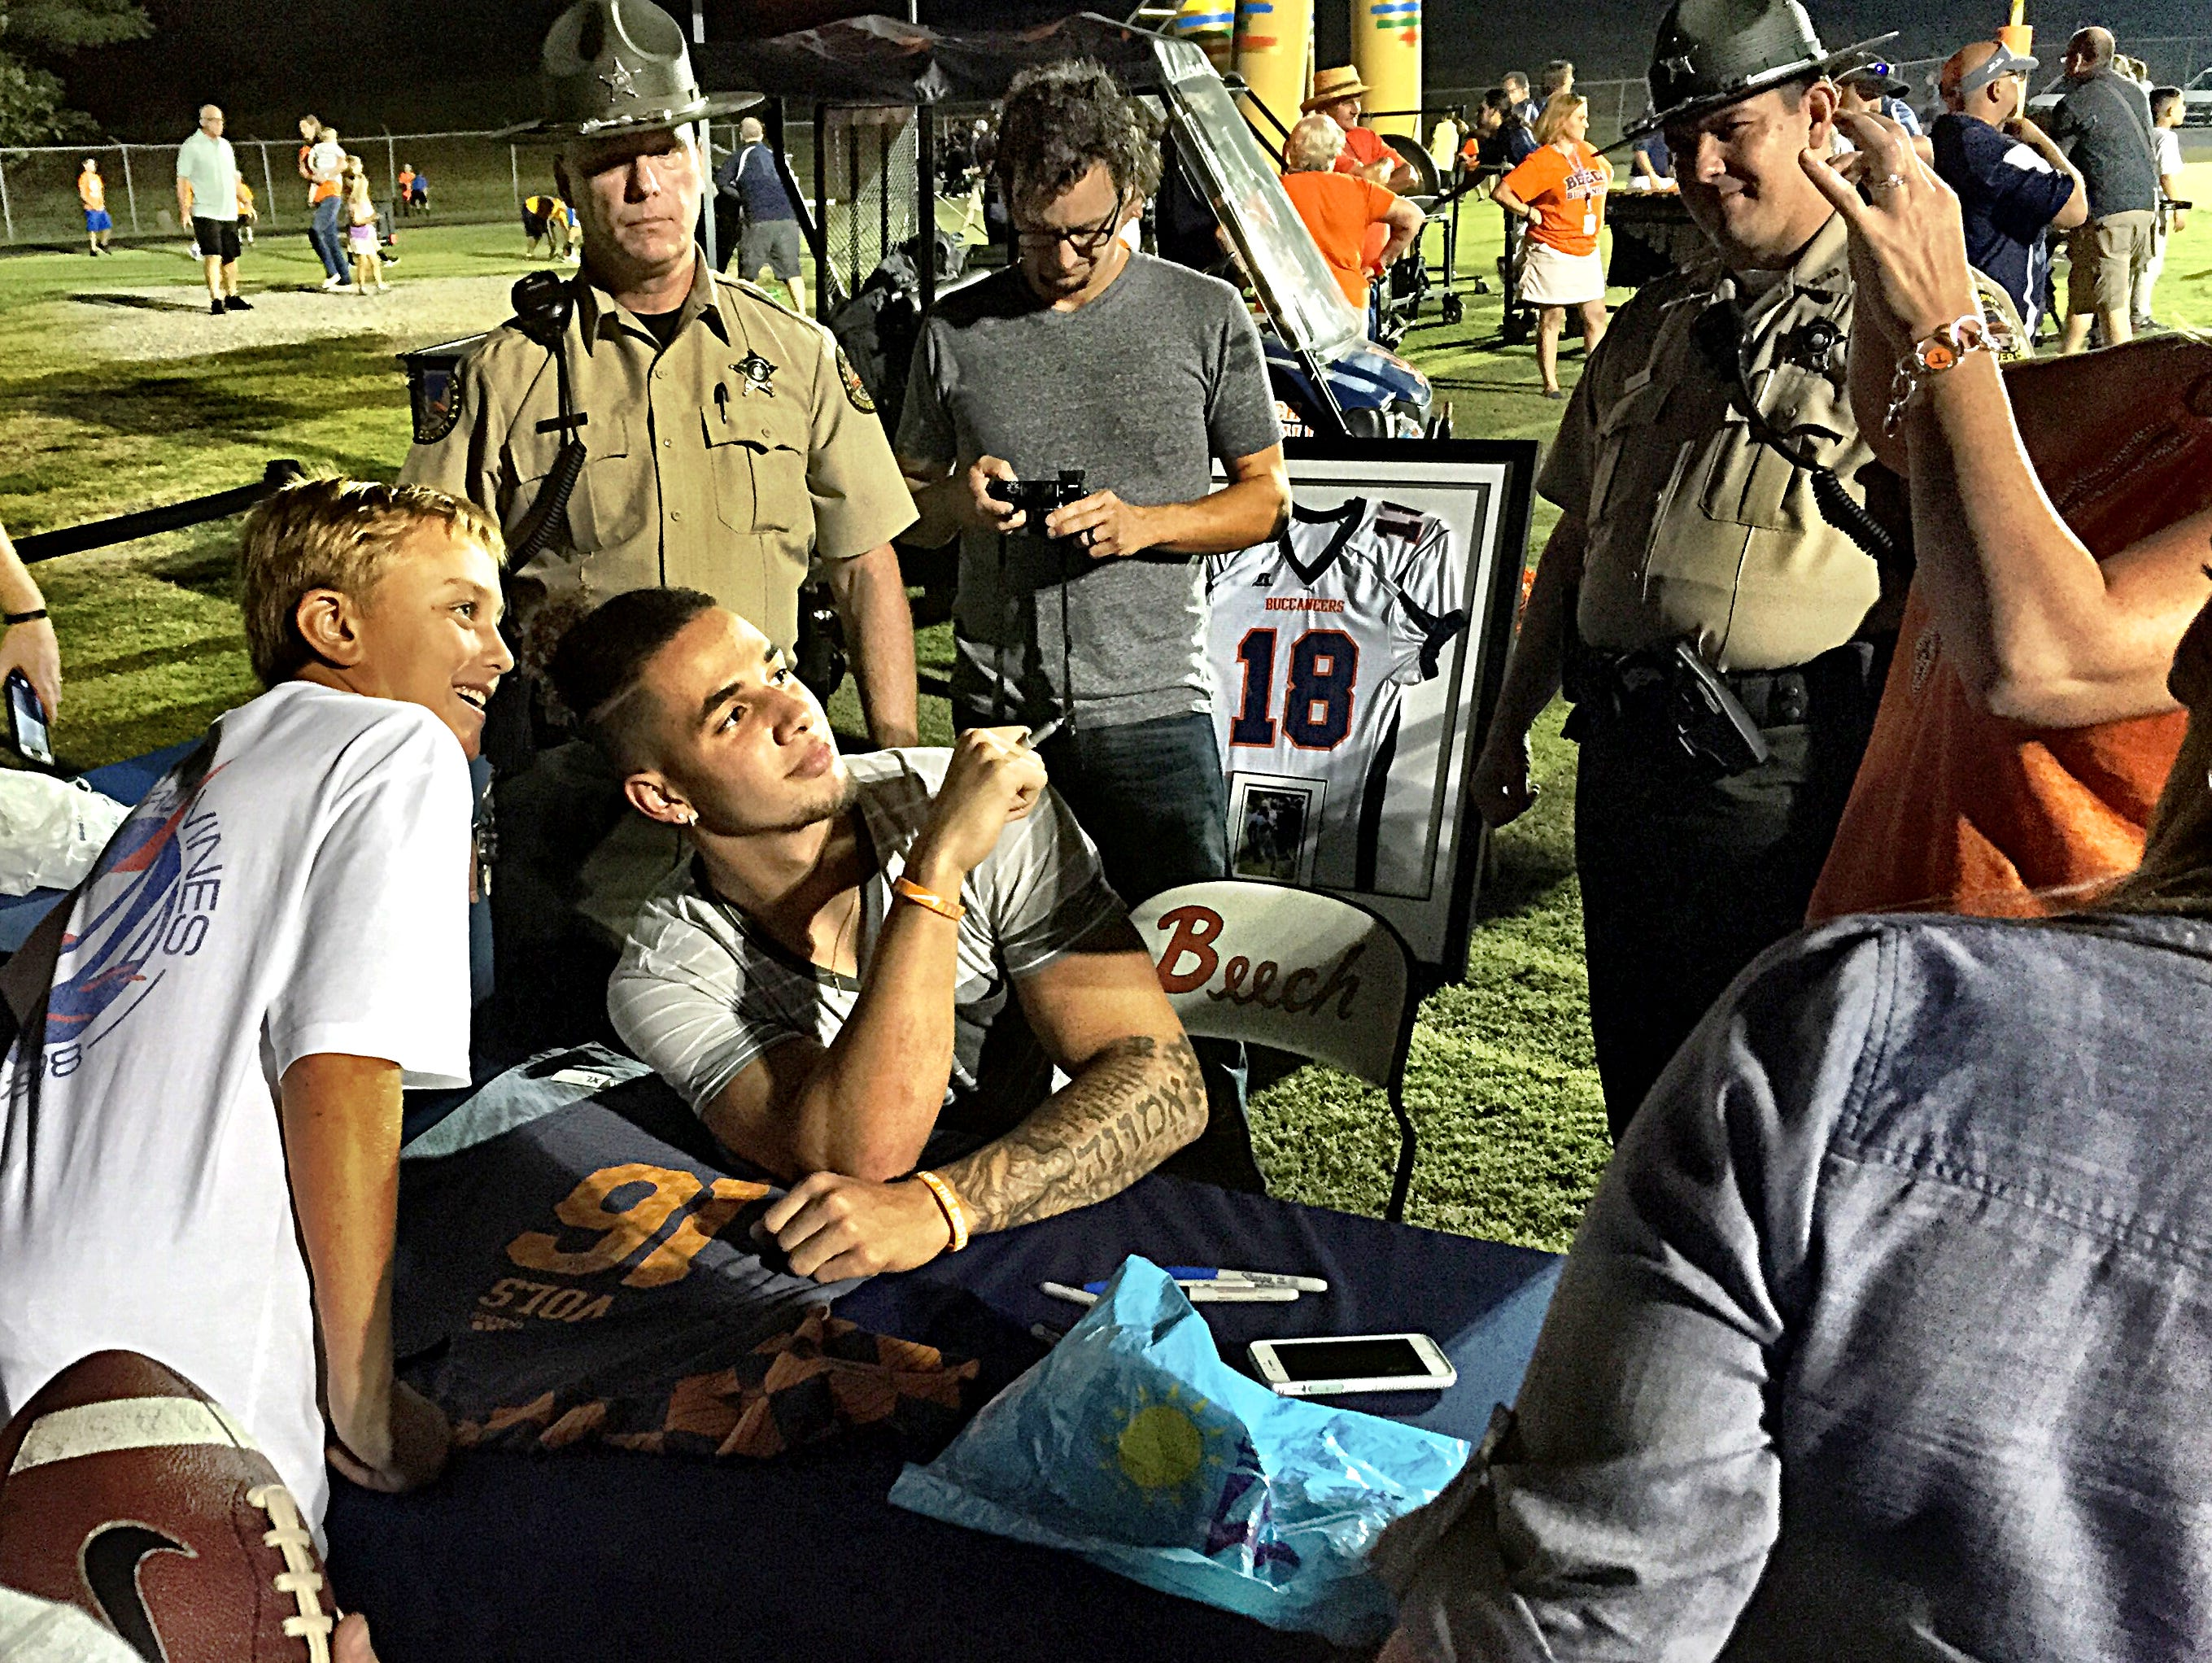 University of Tennessee sophomore tailback Jalen Hurd poses for a photo with a young fan during an autograph-signing session on Friday evening. Hurd had his jersey retired by Beech High School during halftime of the Buccaneers' home opener against Rossview.